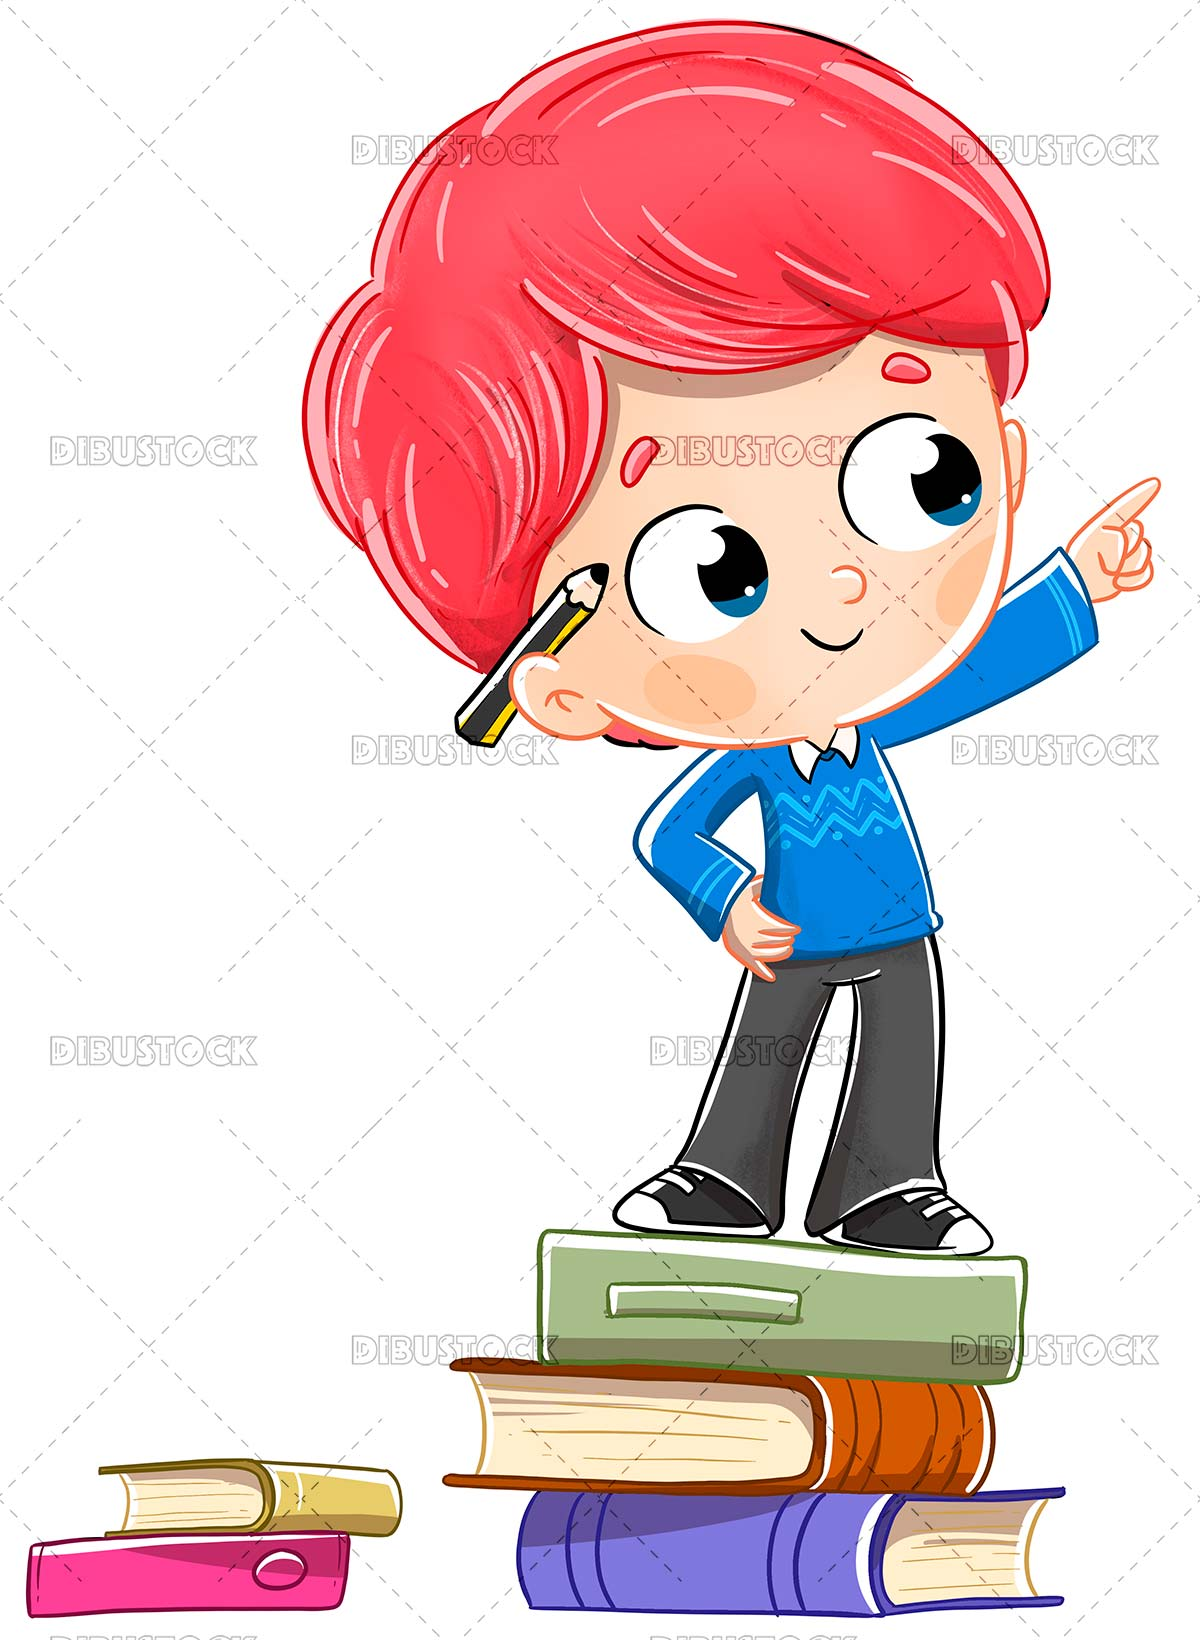 Child on books pointing at something